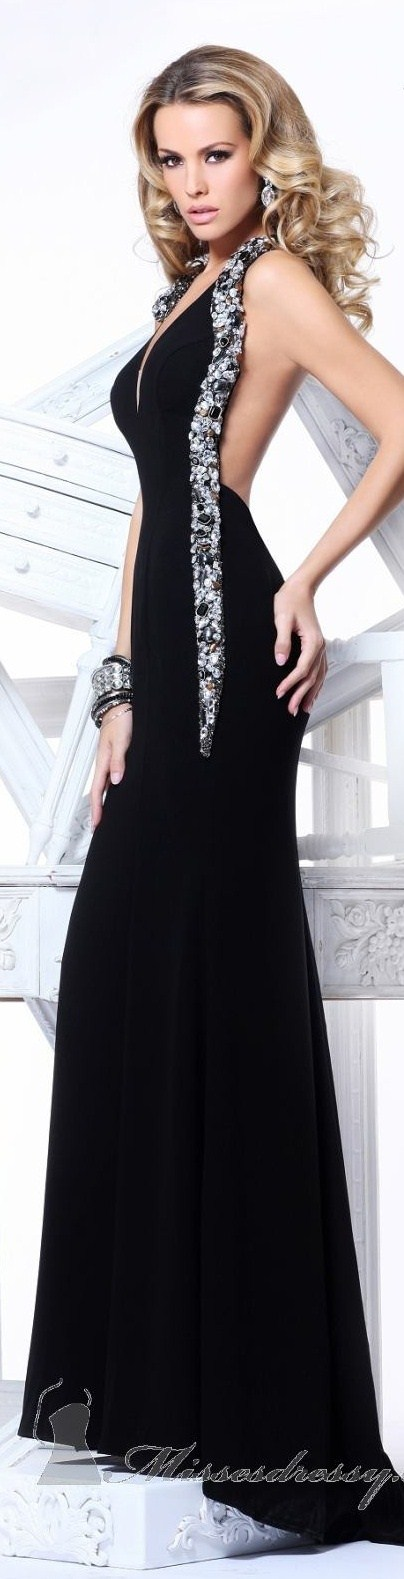 beautiful black gown My style. Beautiful. Incensewoman